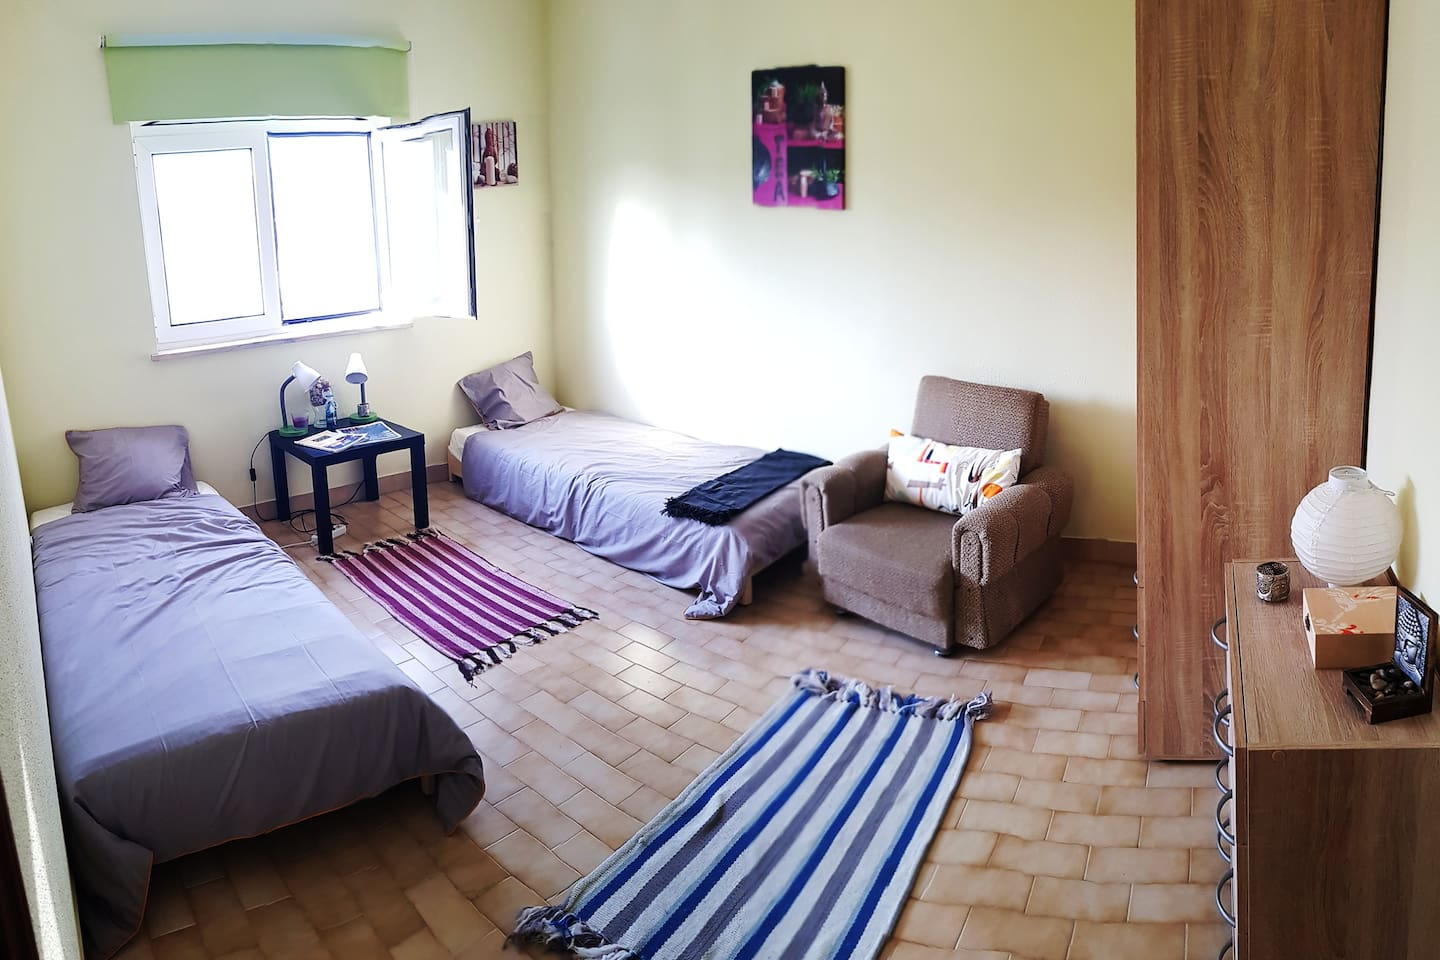 This is the bedroom which offers space for up to two persons and is part of a 5 bedroom house. WiFi signal is available in the room.